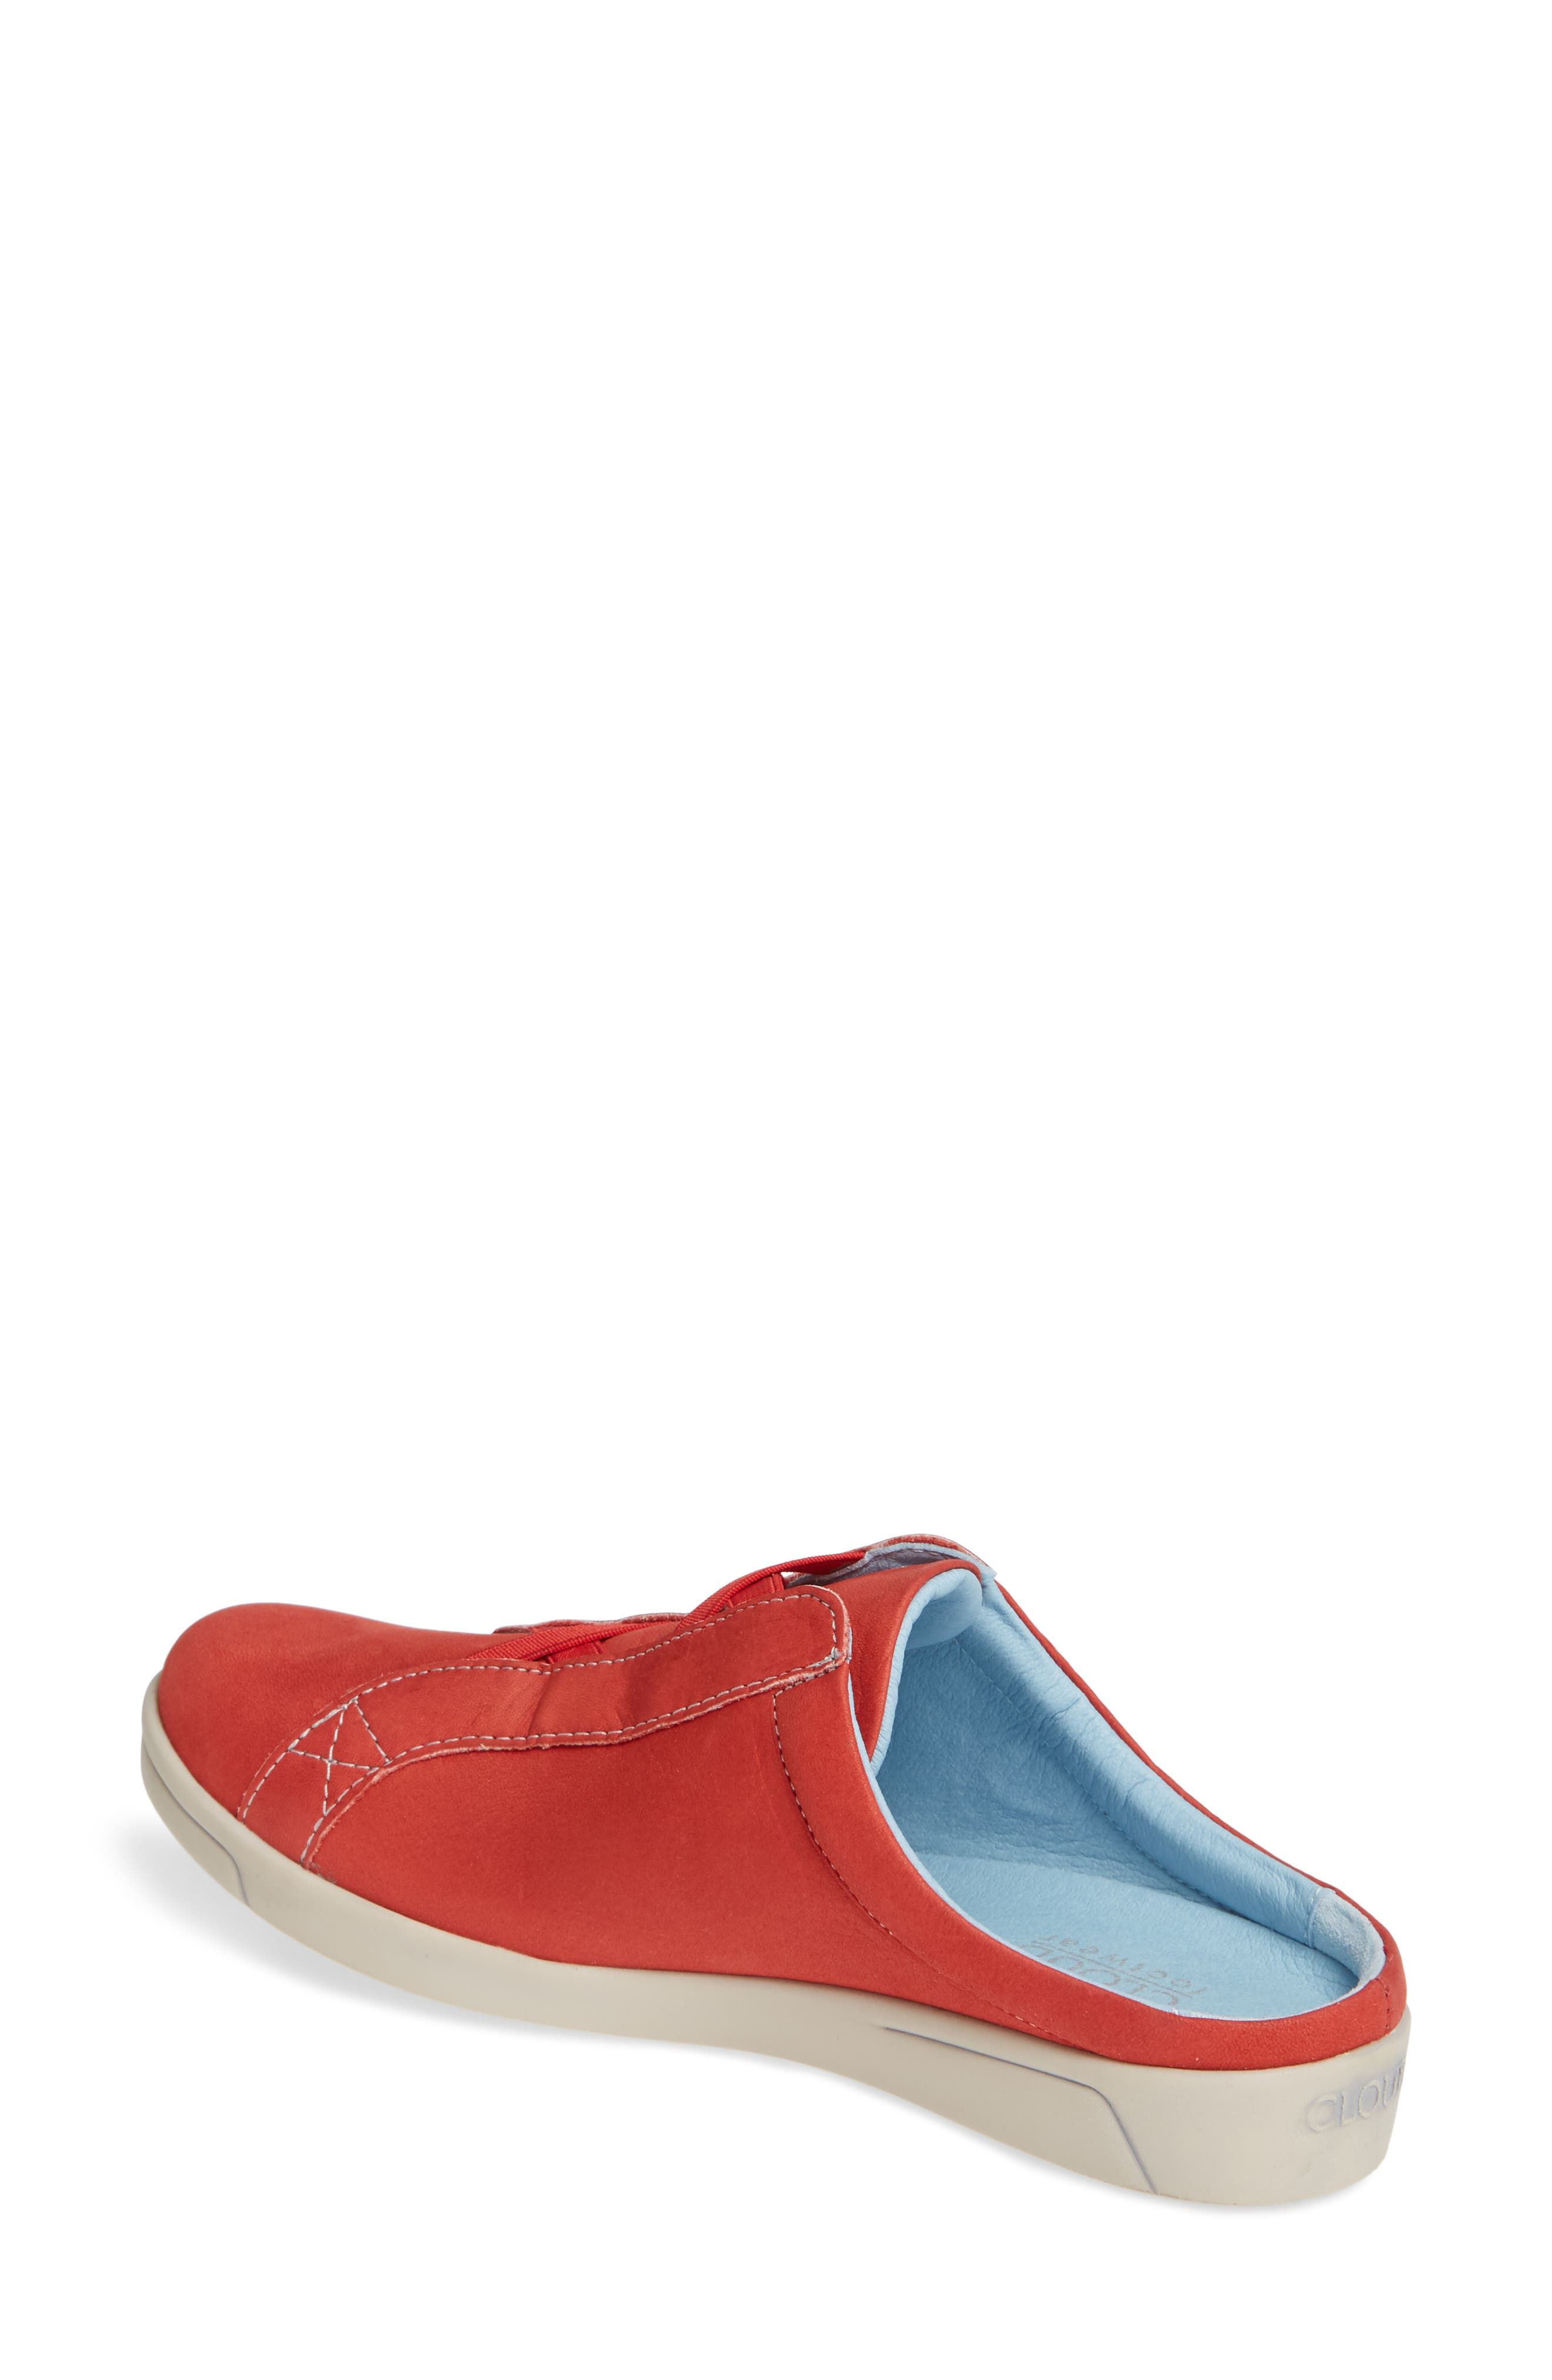 Arizona Sneaker,                             Alternate thumbnail 2, color,                             RED LEATHER